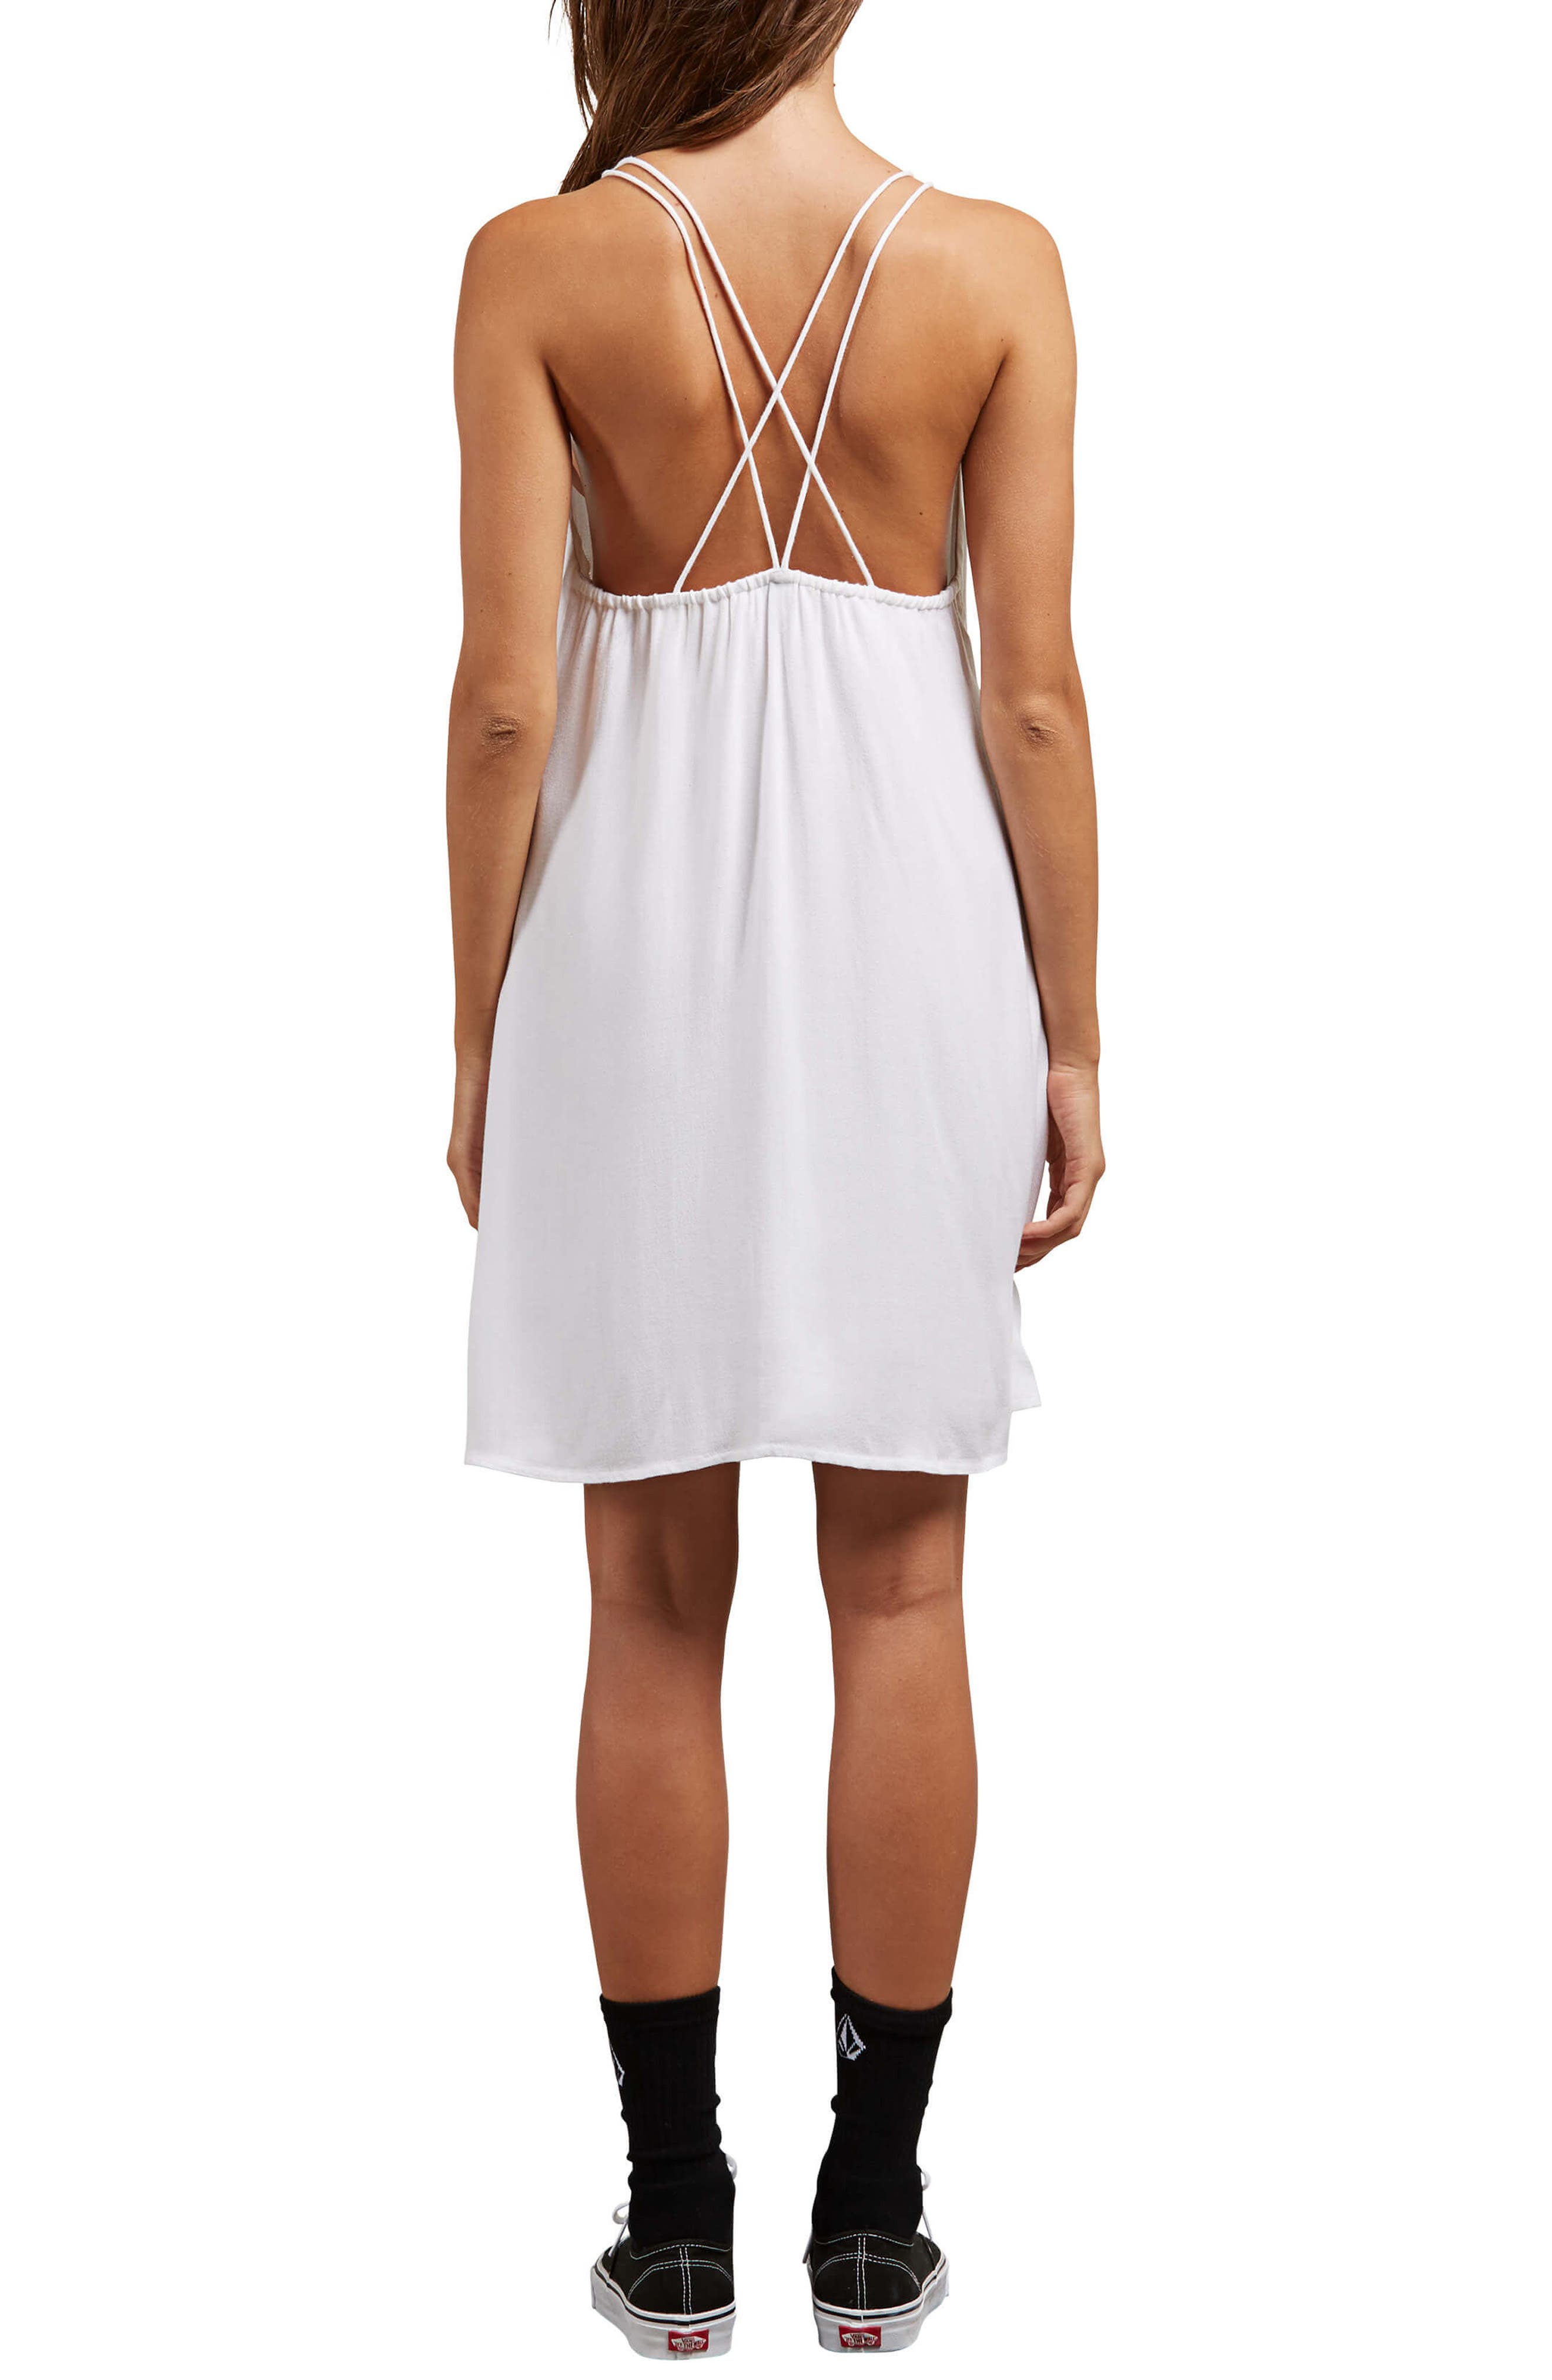 You Want This Strappy Dress,                             Alternate thumbnail 2, color,                             100